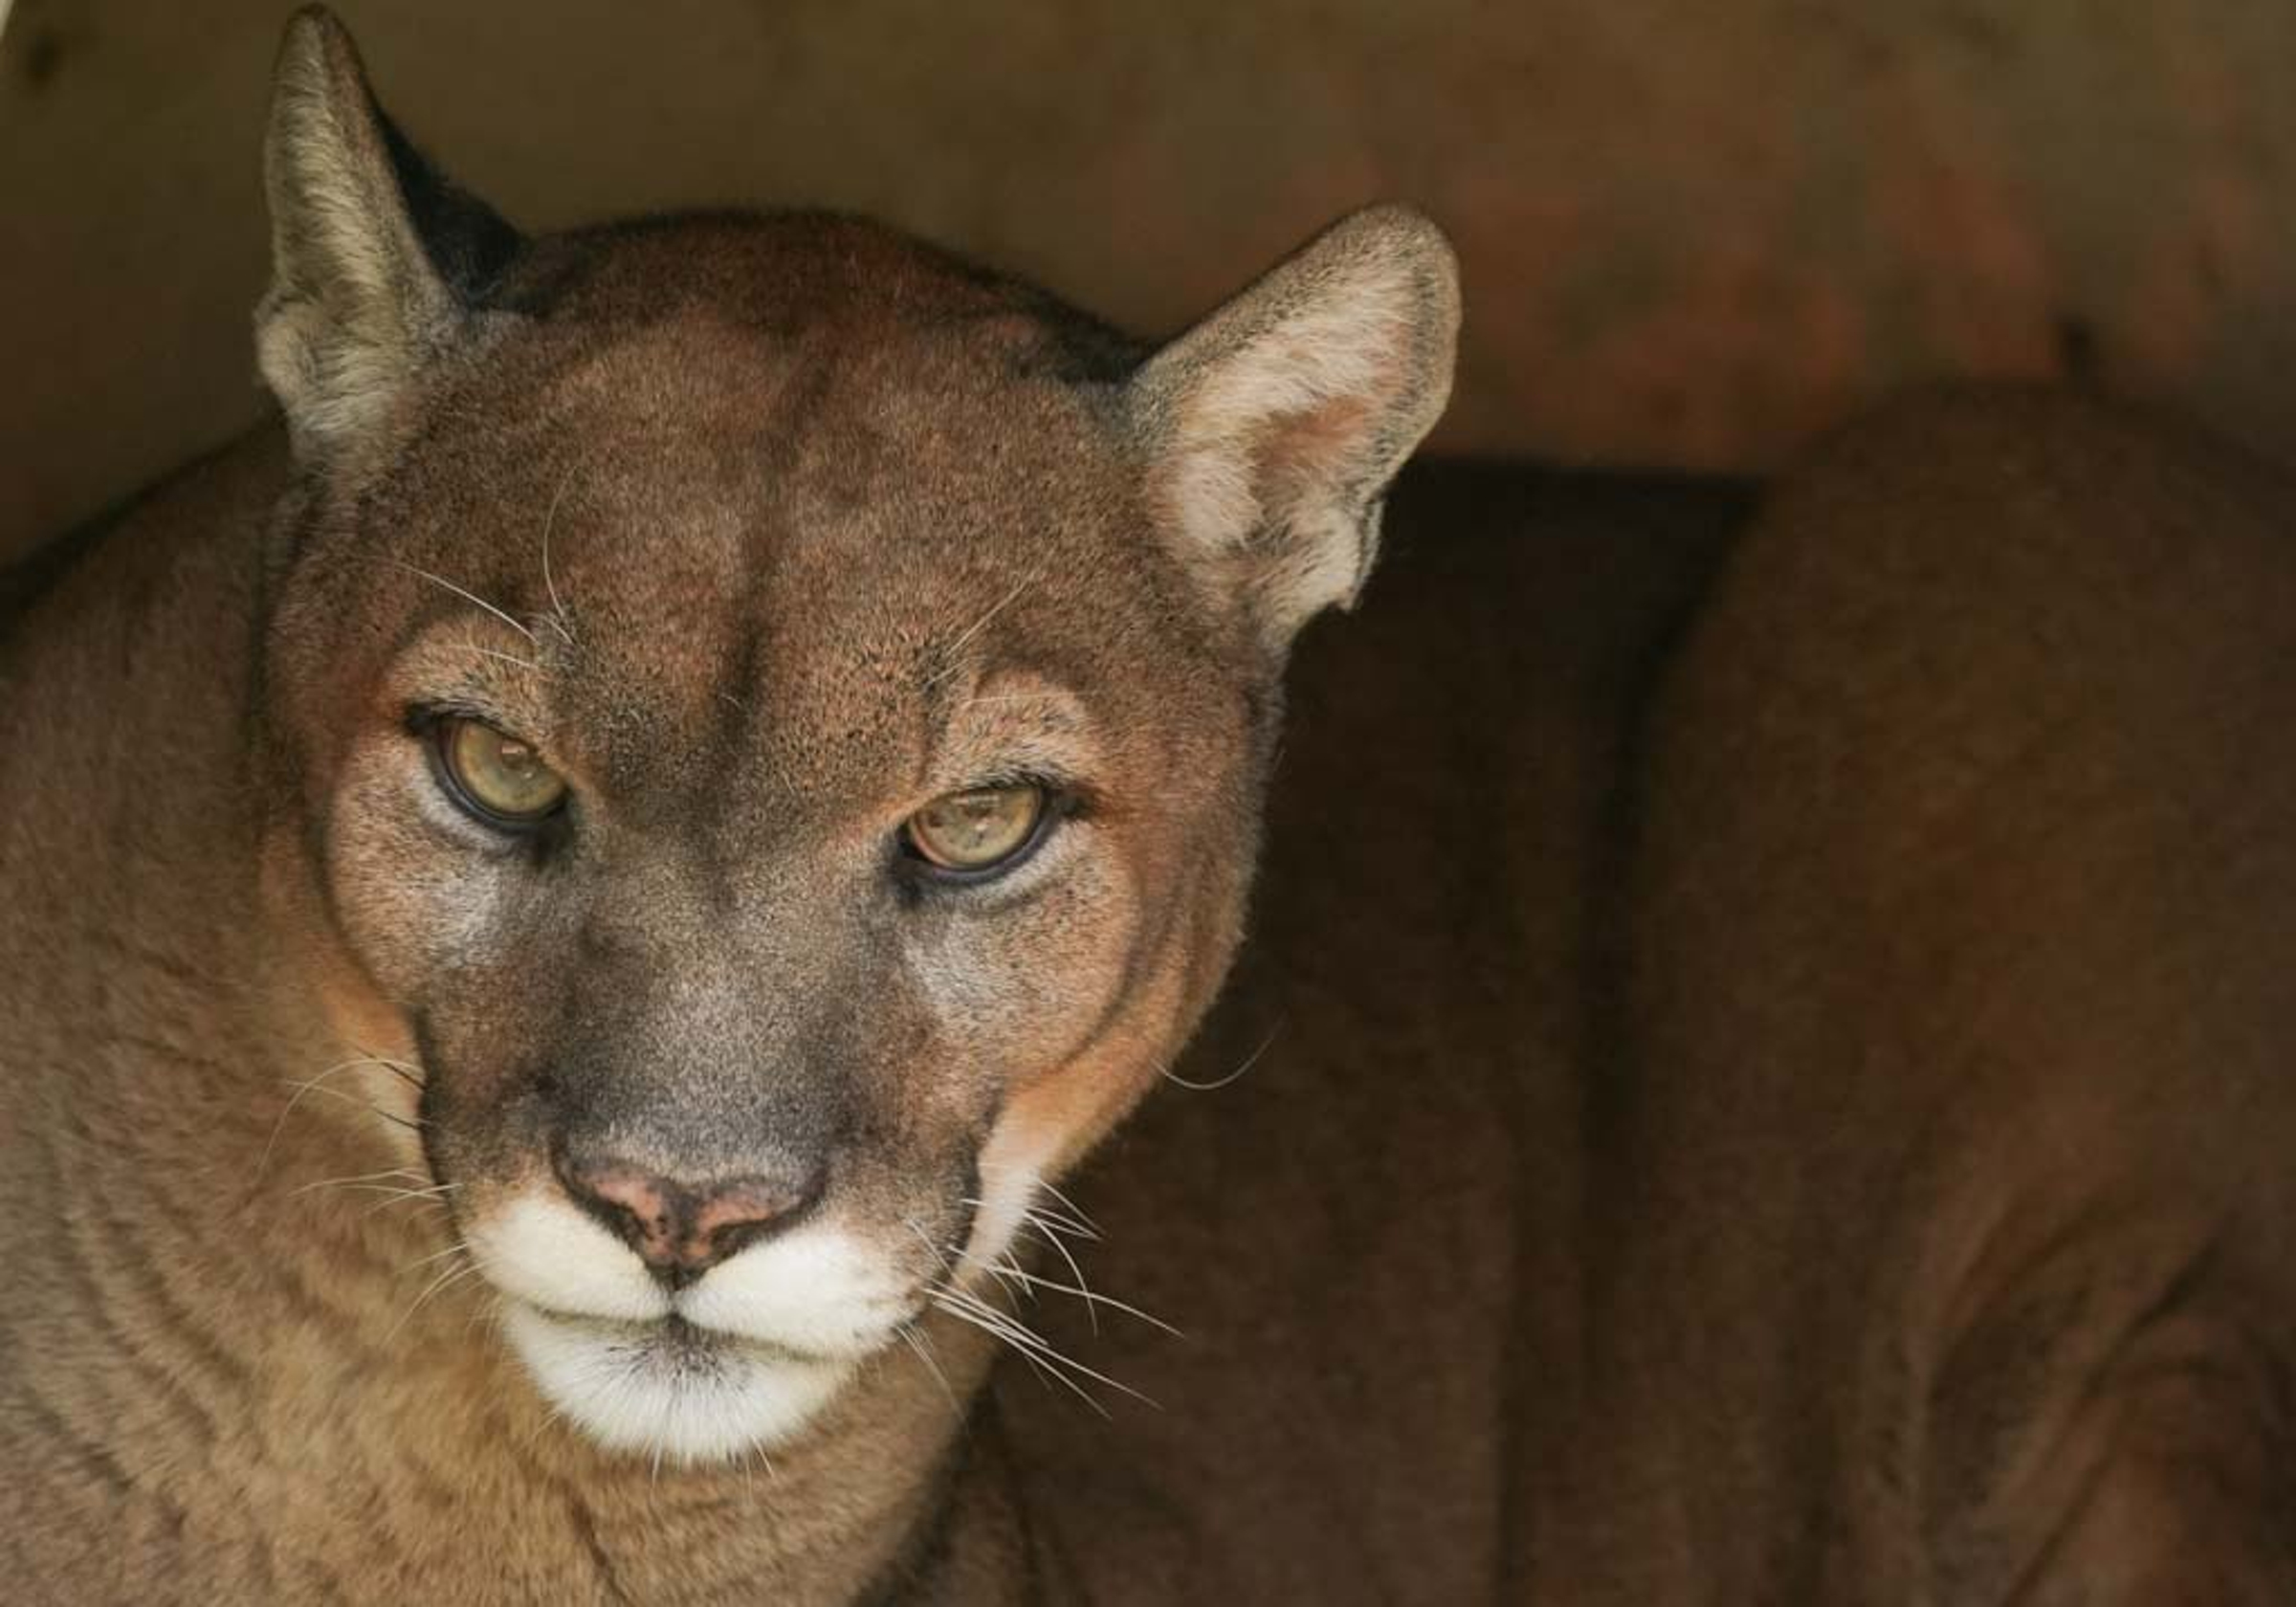 A mountain lion named Rocky, at the East Coast Animal Rescue, Tuesday, September 4, 2018.